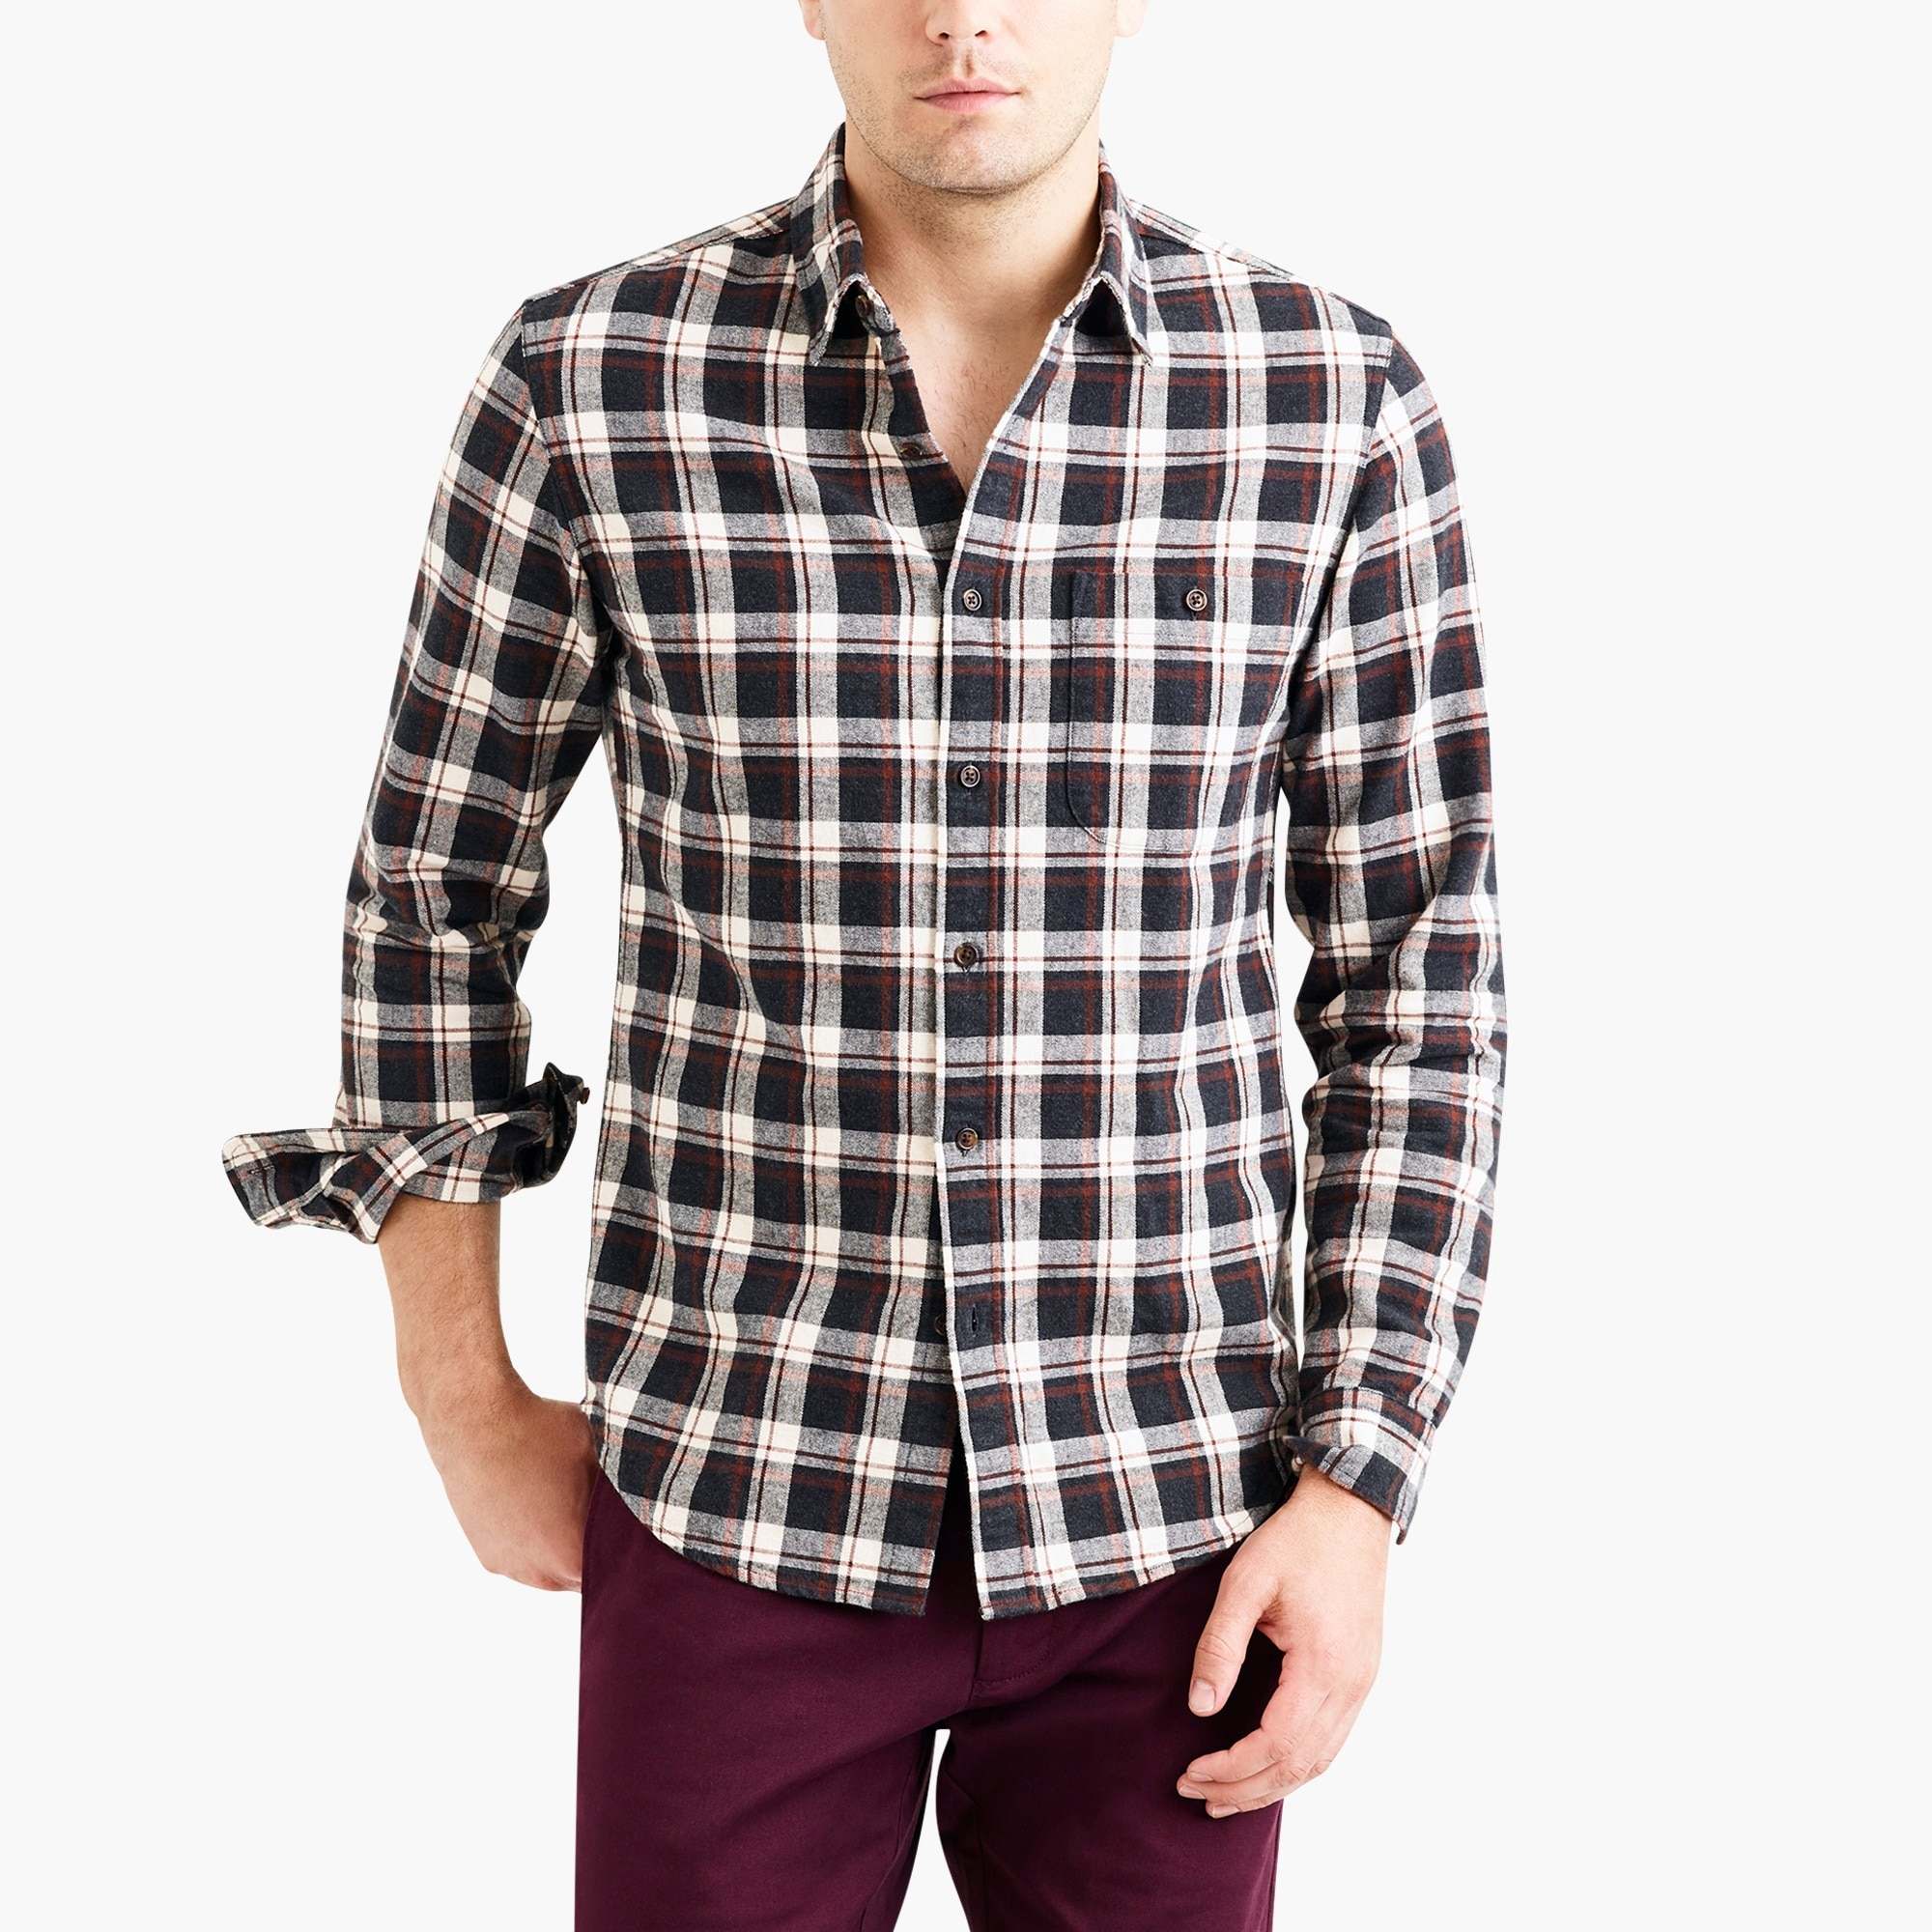 factory mens Rugged elbow-patch shirt in gray plaid